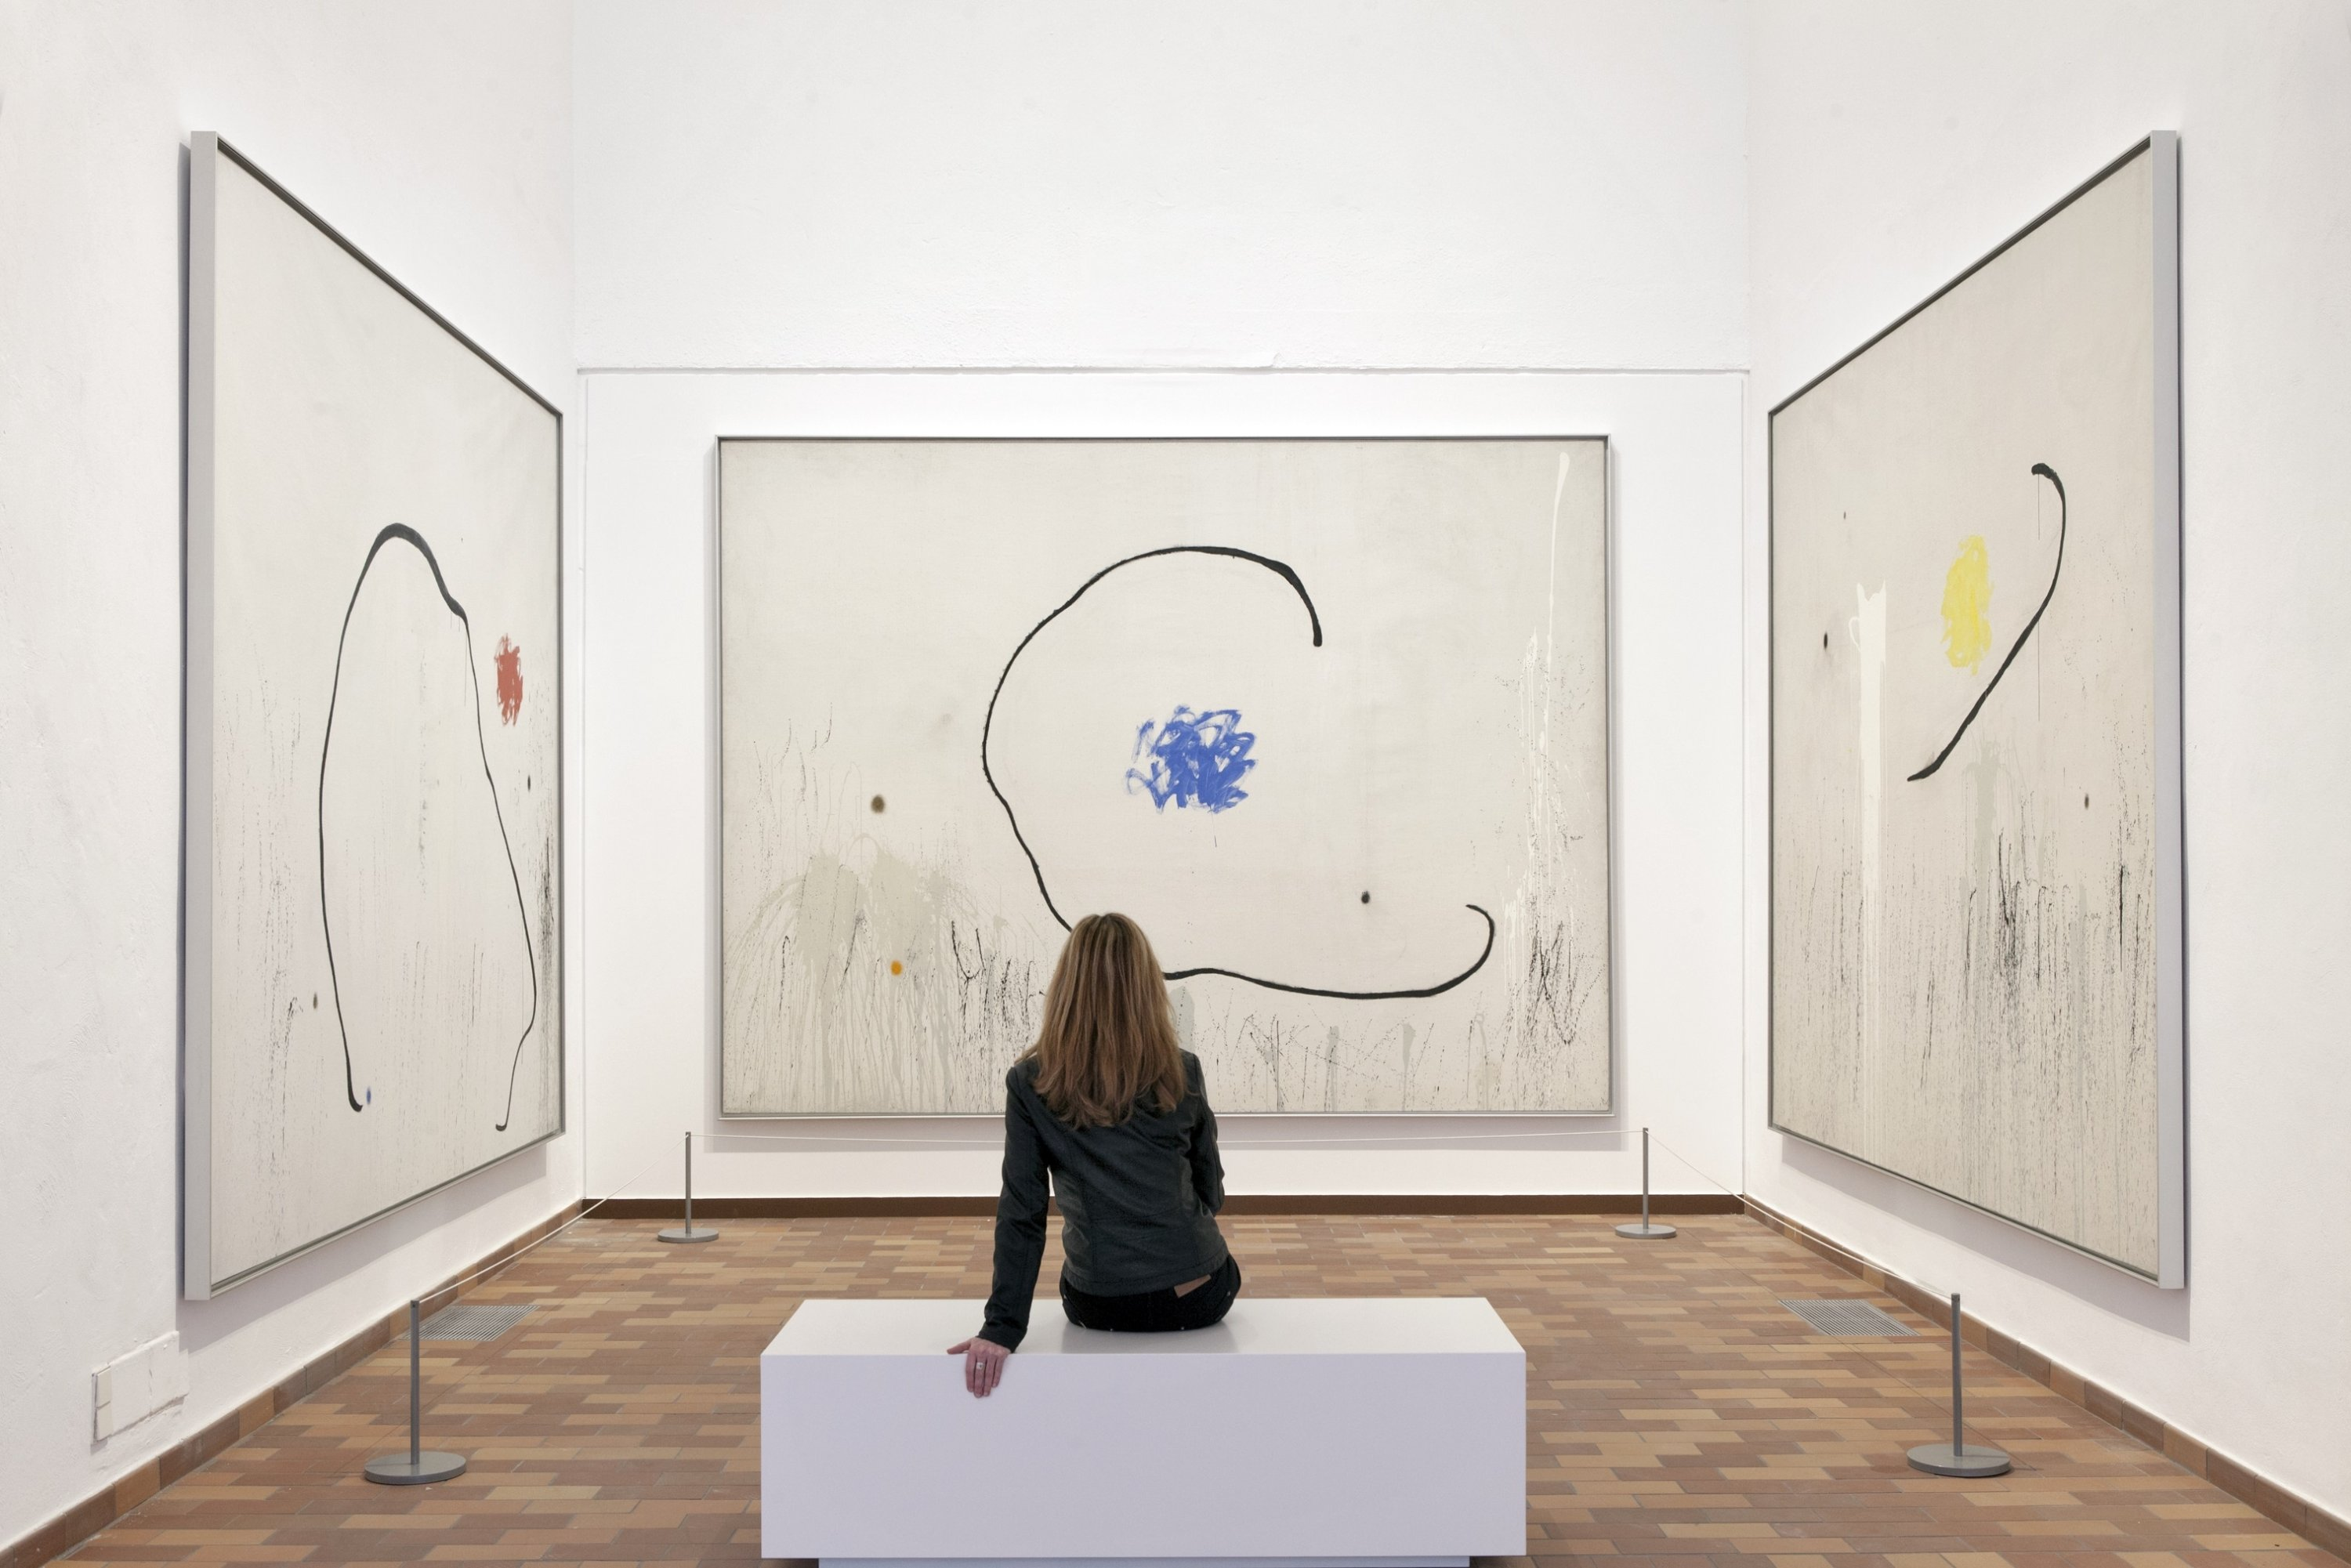 Paintings at the Miro Museum in Barcelona, Spain. (DPA Photo)